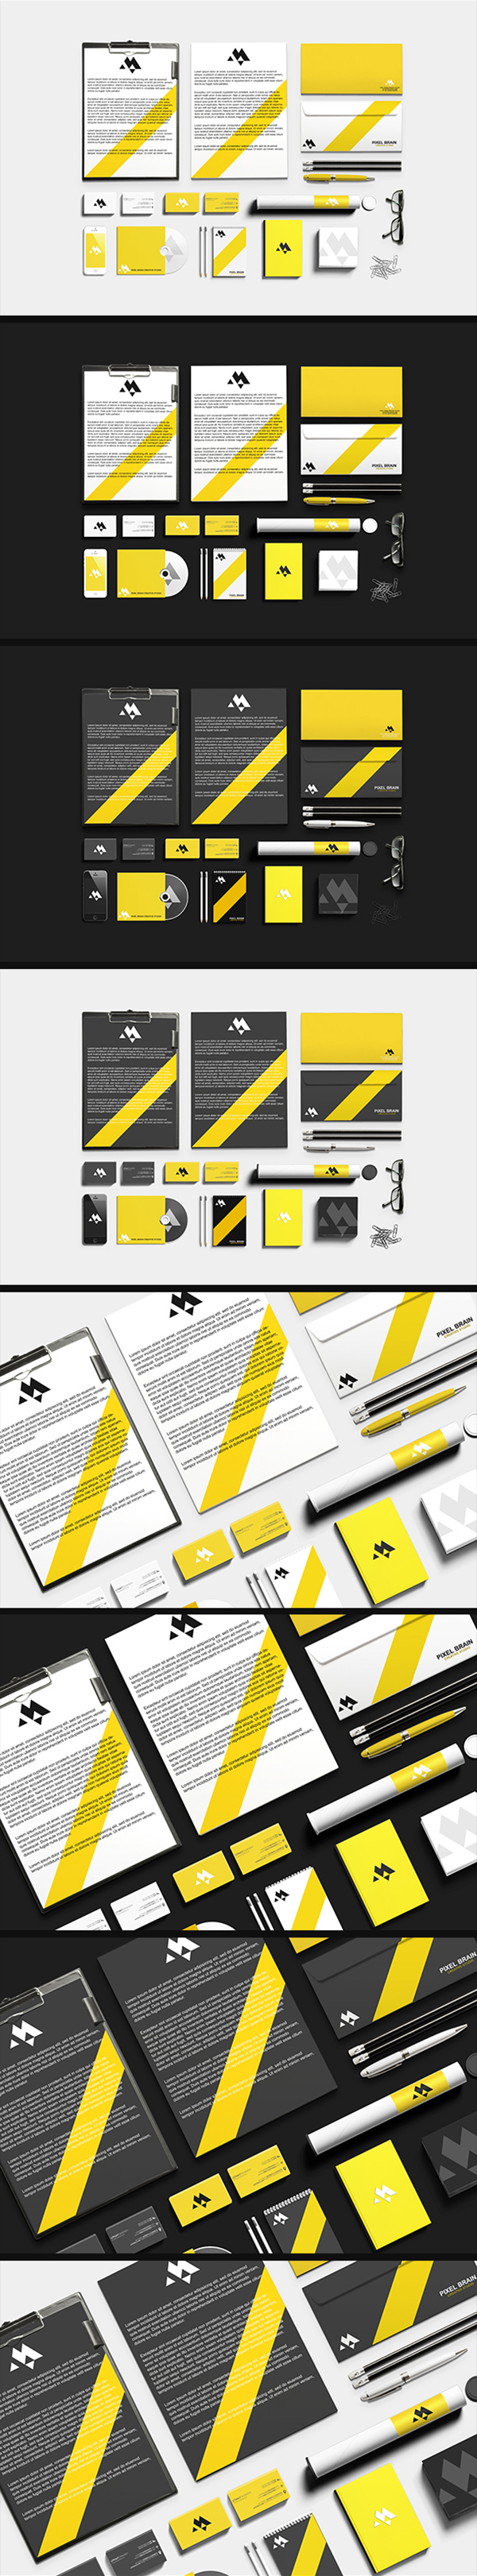 01 Stationary : Branding Mock-up Vol. 1